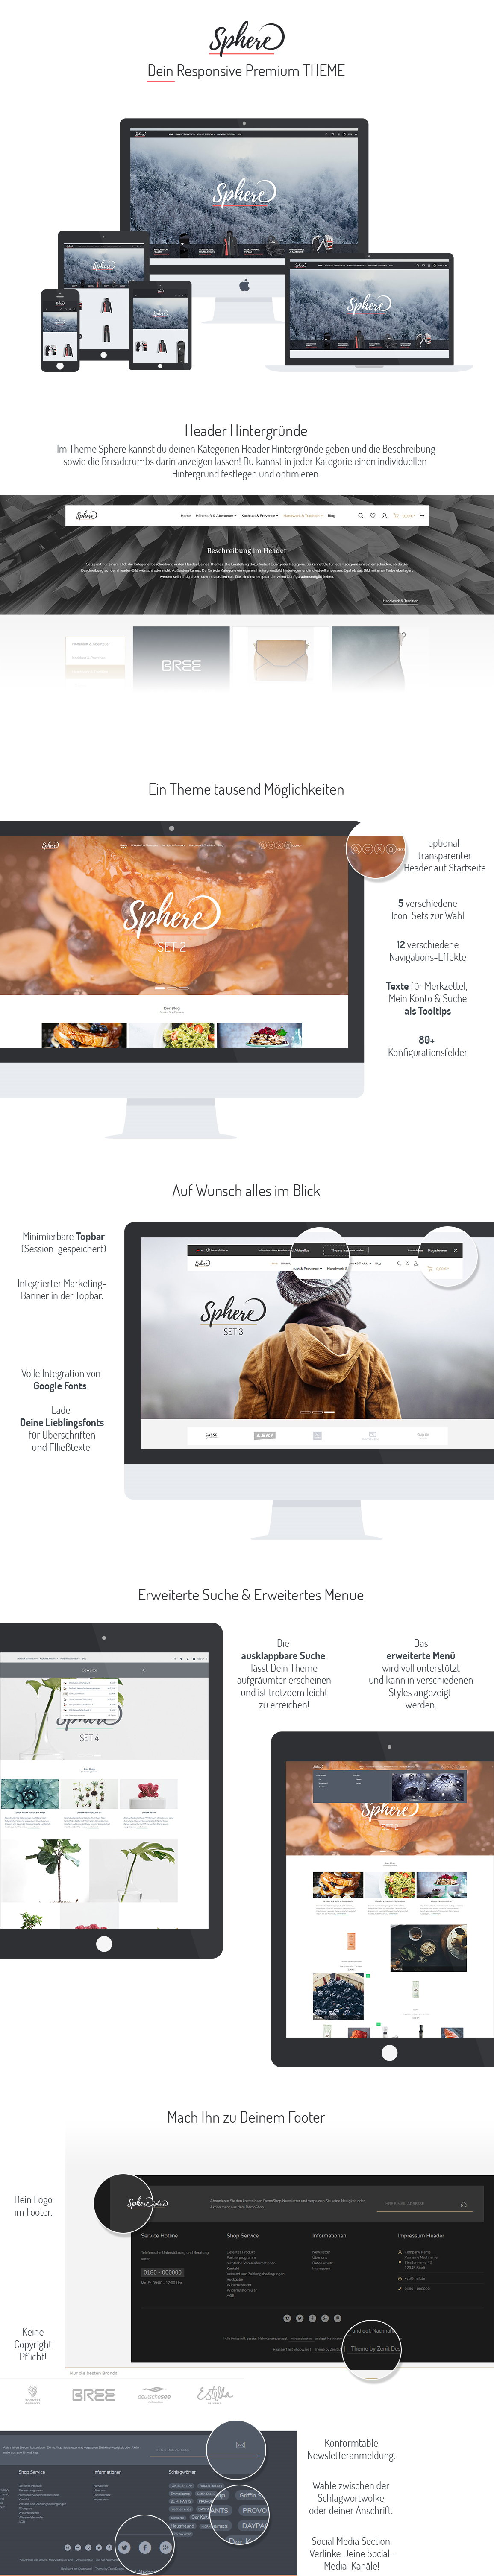 zenit Design Shopware Template